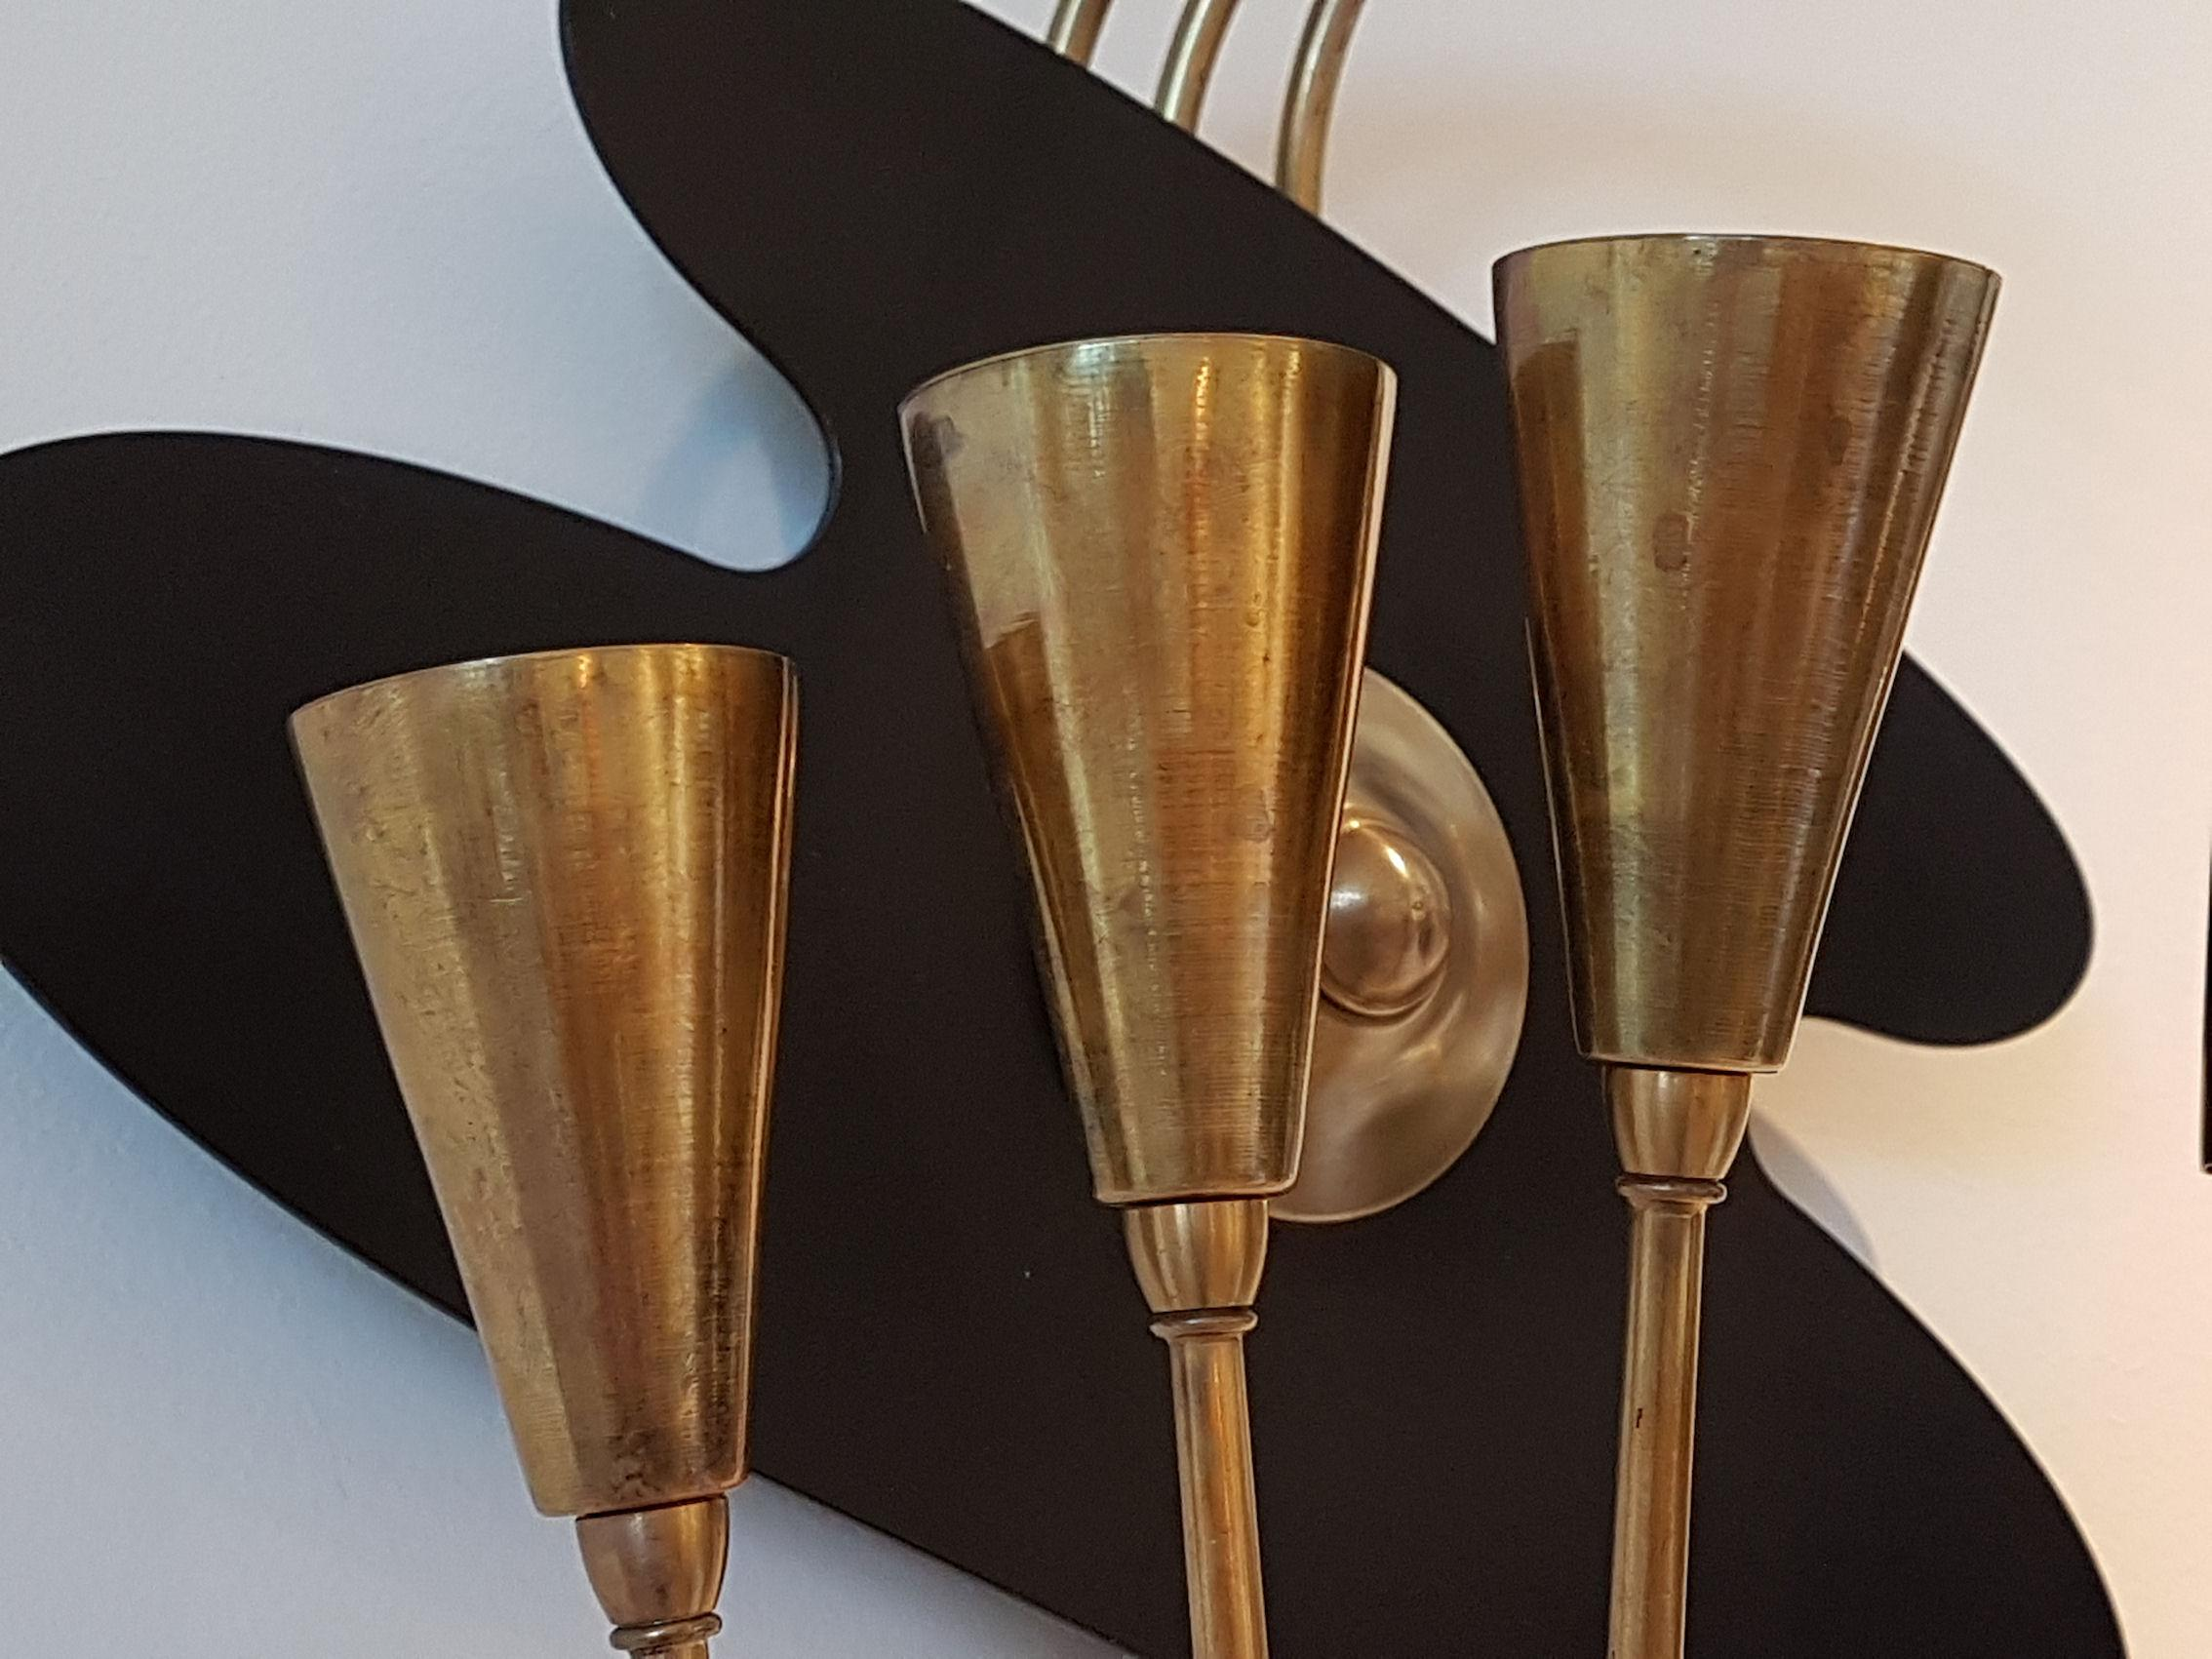 Pair of Large Brass Mid-Century Modern Wall Sconces ... on Mid Century Modern Sconces id=85604